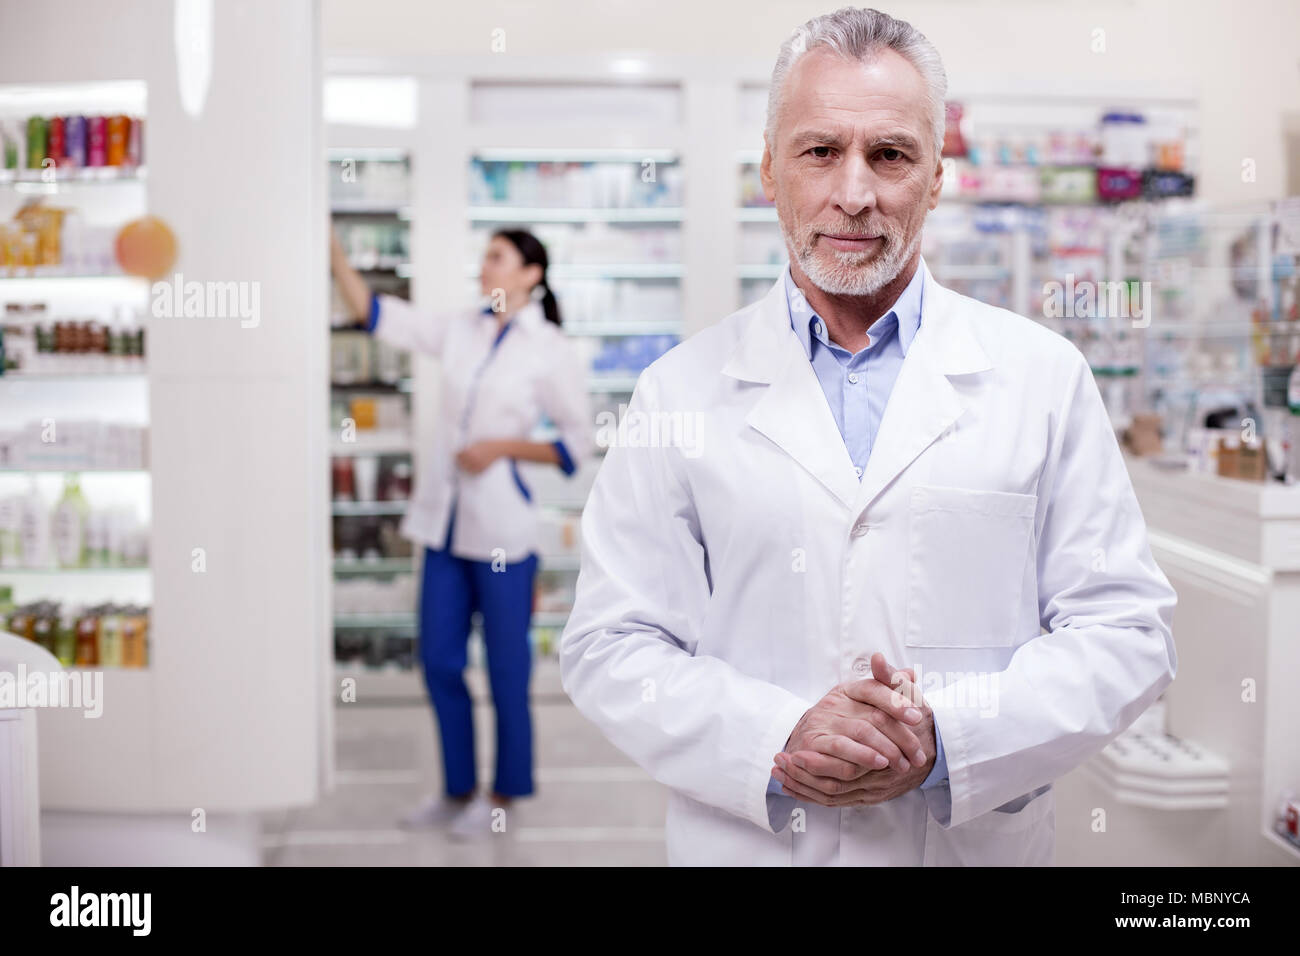 Confident male pharmacist expecting clients - Stock Image